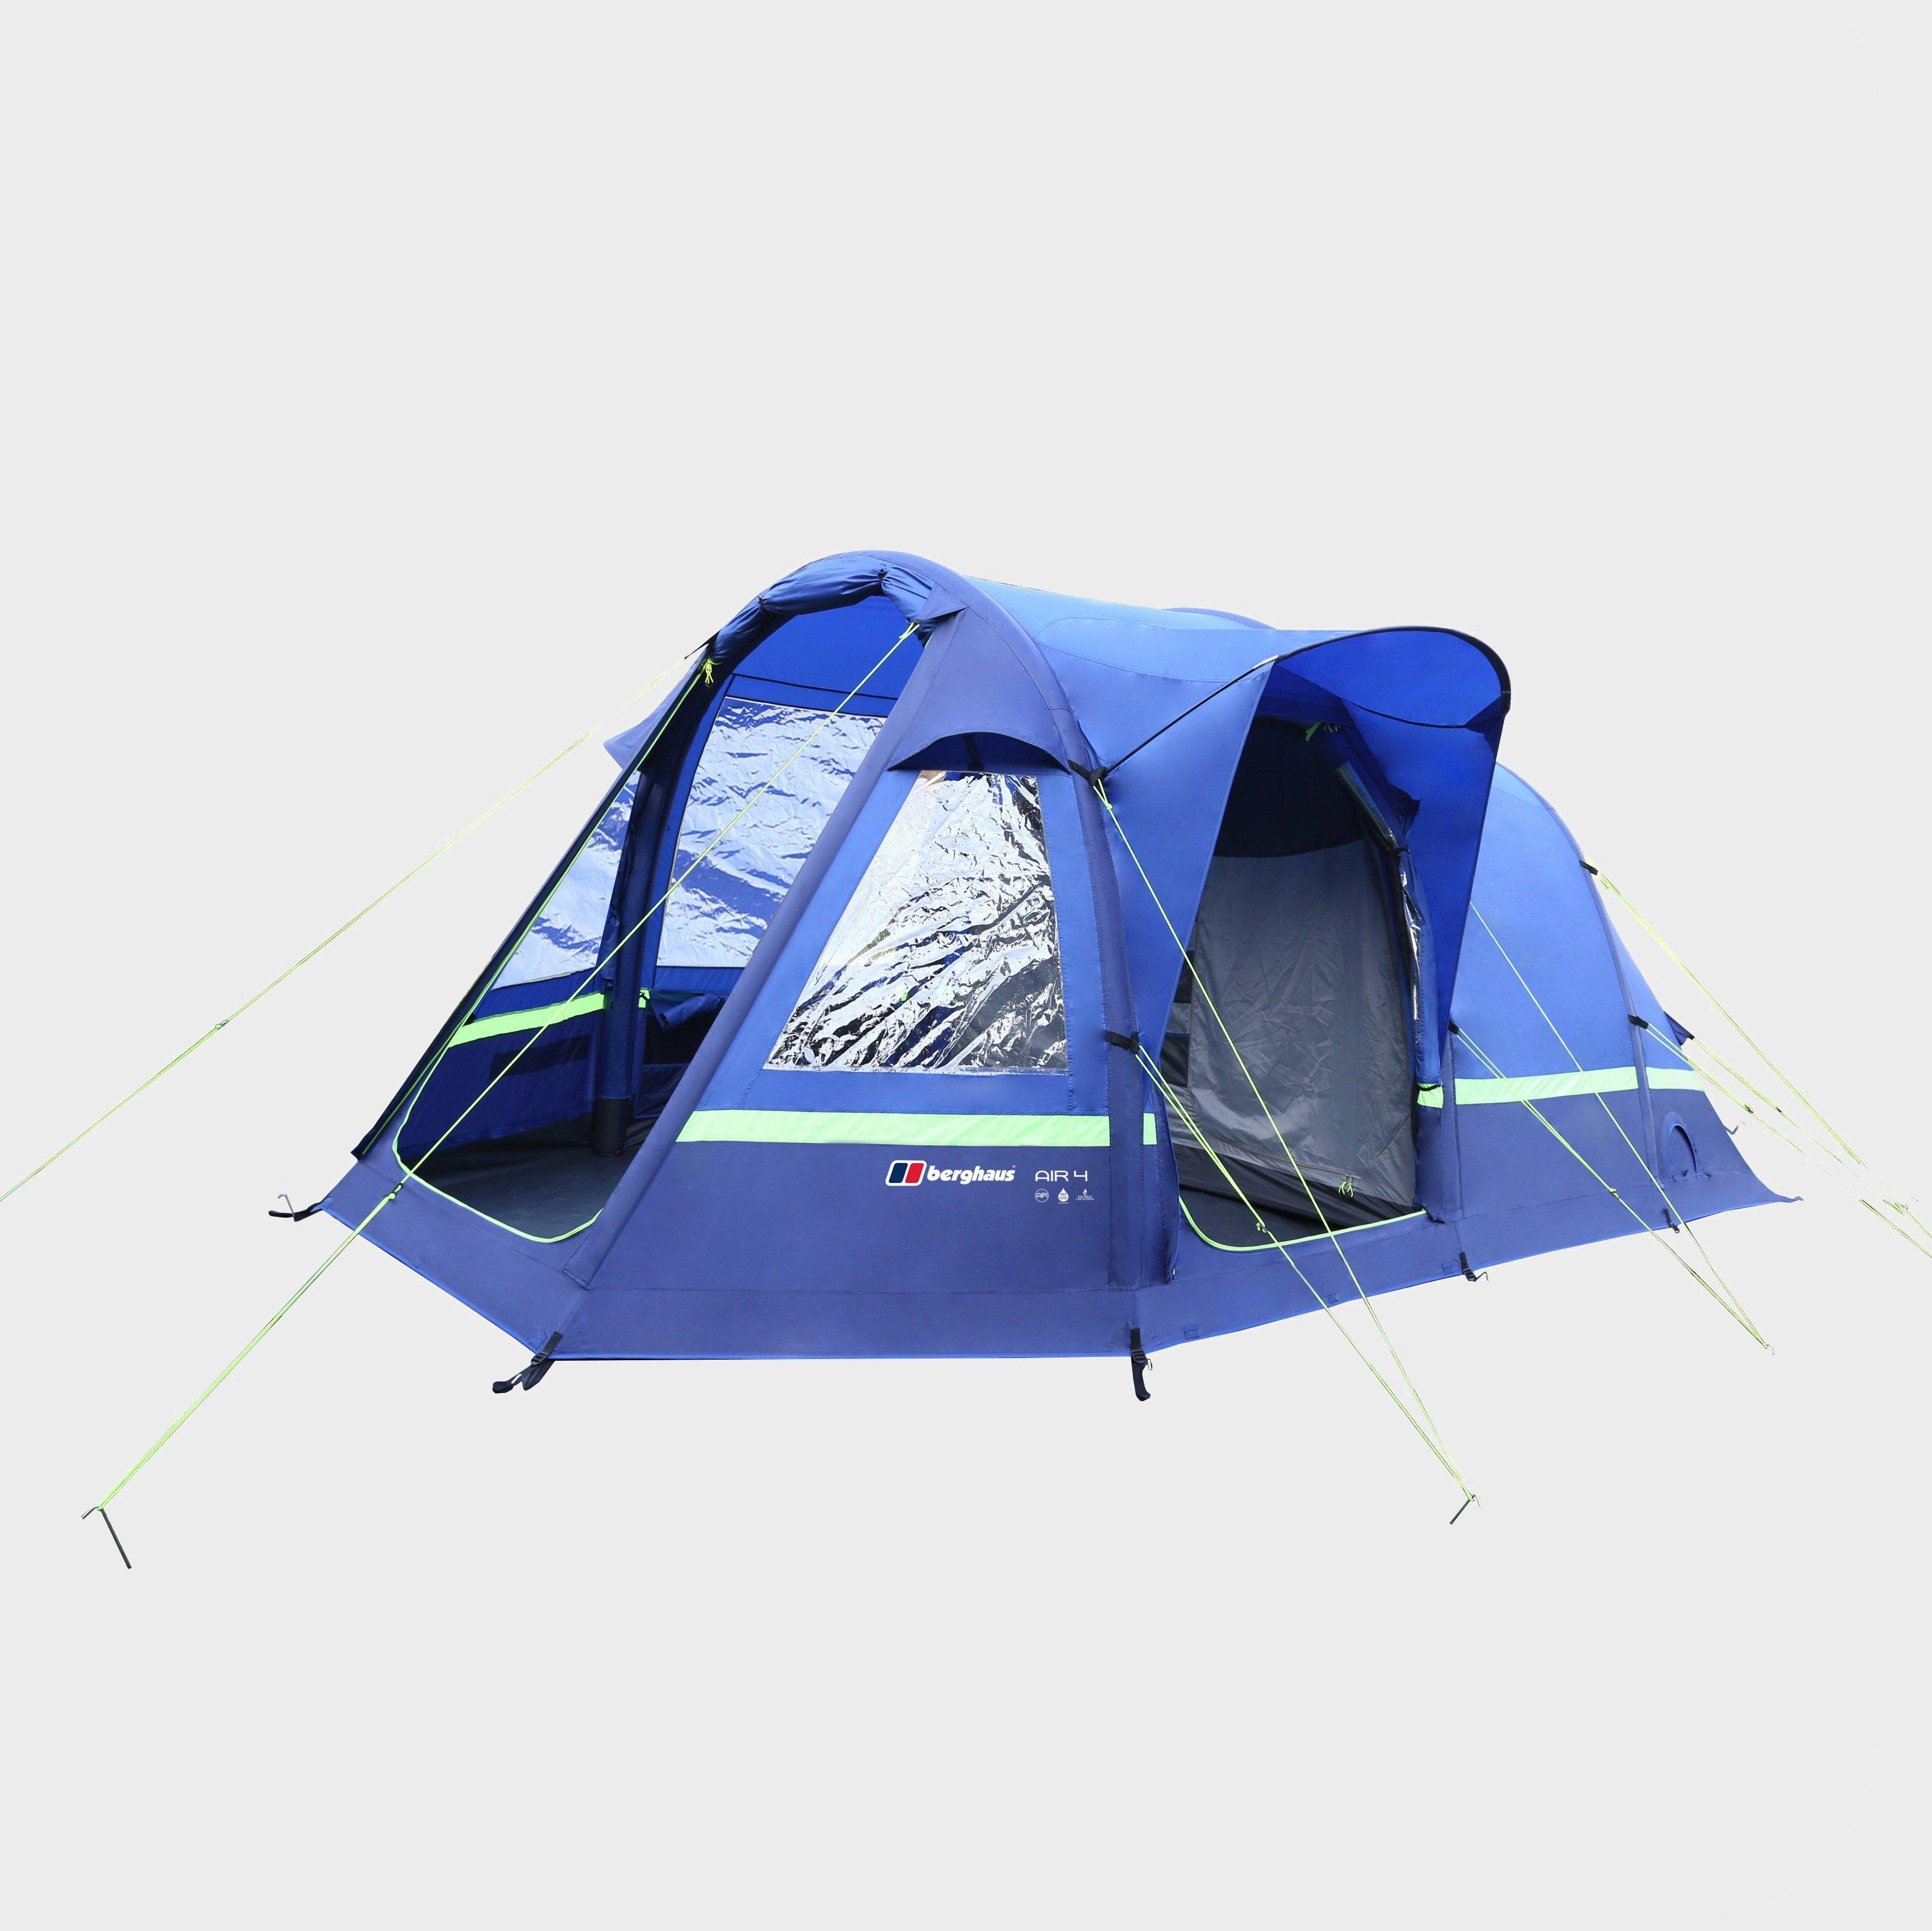 Air 4 Inflatable Tent & Berghaus Air 4 Inflatable Tent